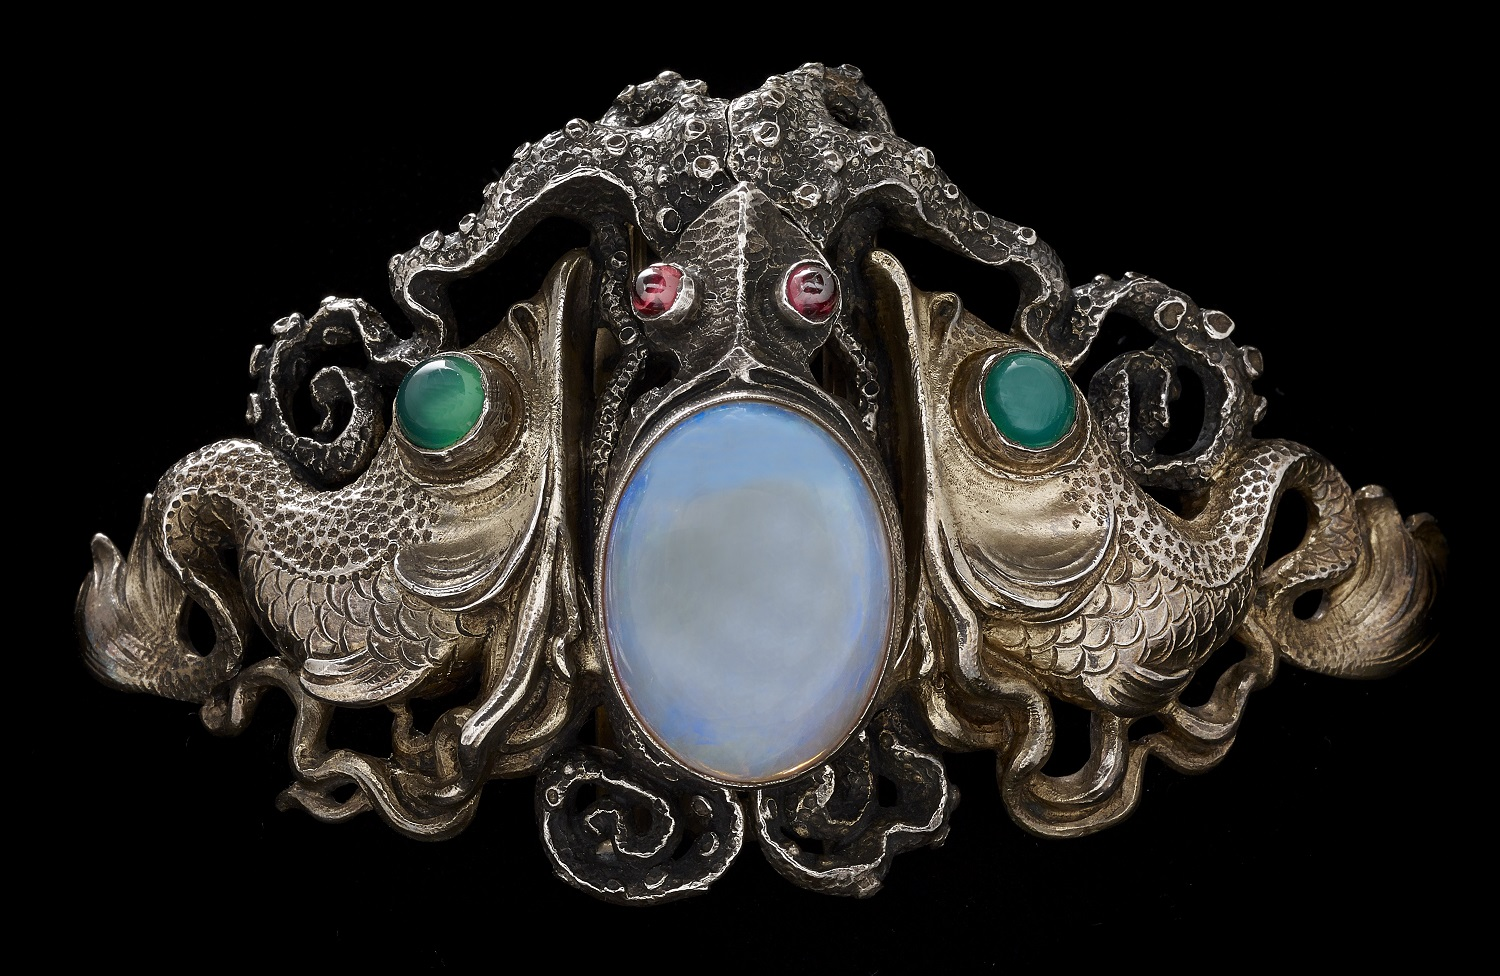 Wilhelm Lucas von Cranach (German, 1861 – 1918), Octopus Waist Clasp, c. 1900. Collection of Richard H. Driehaus. Photo by John Faier, 2014, © The Richard H. Driehaus Museum.